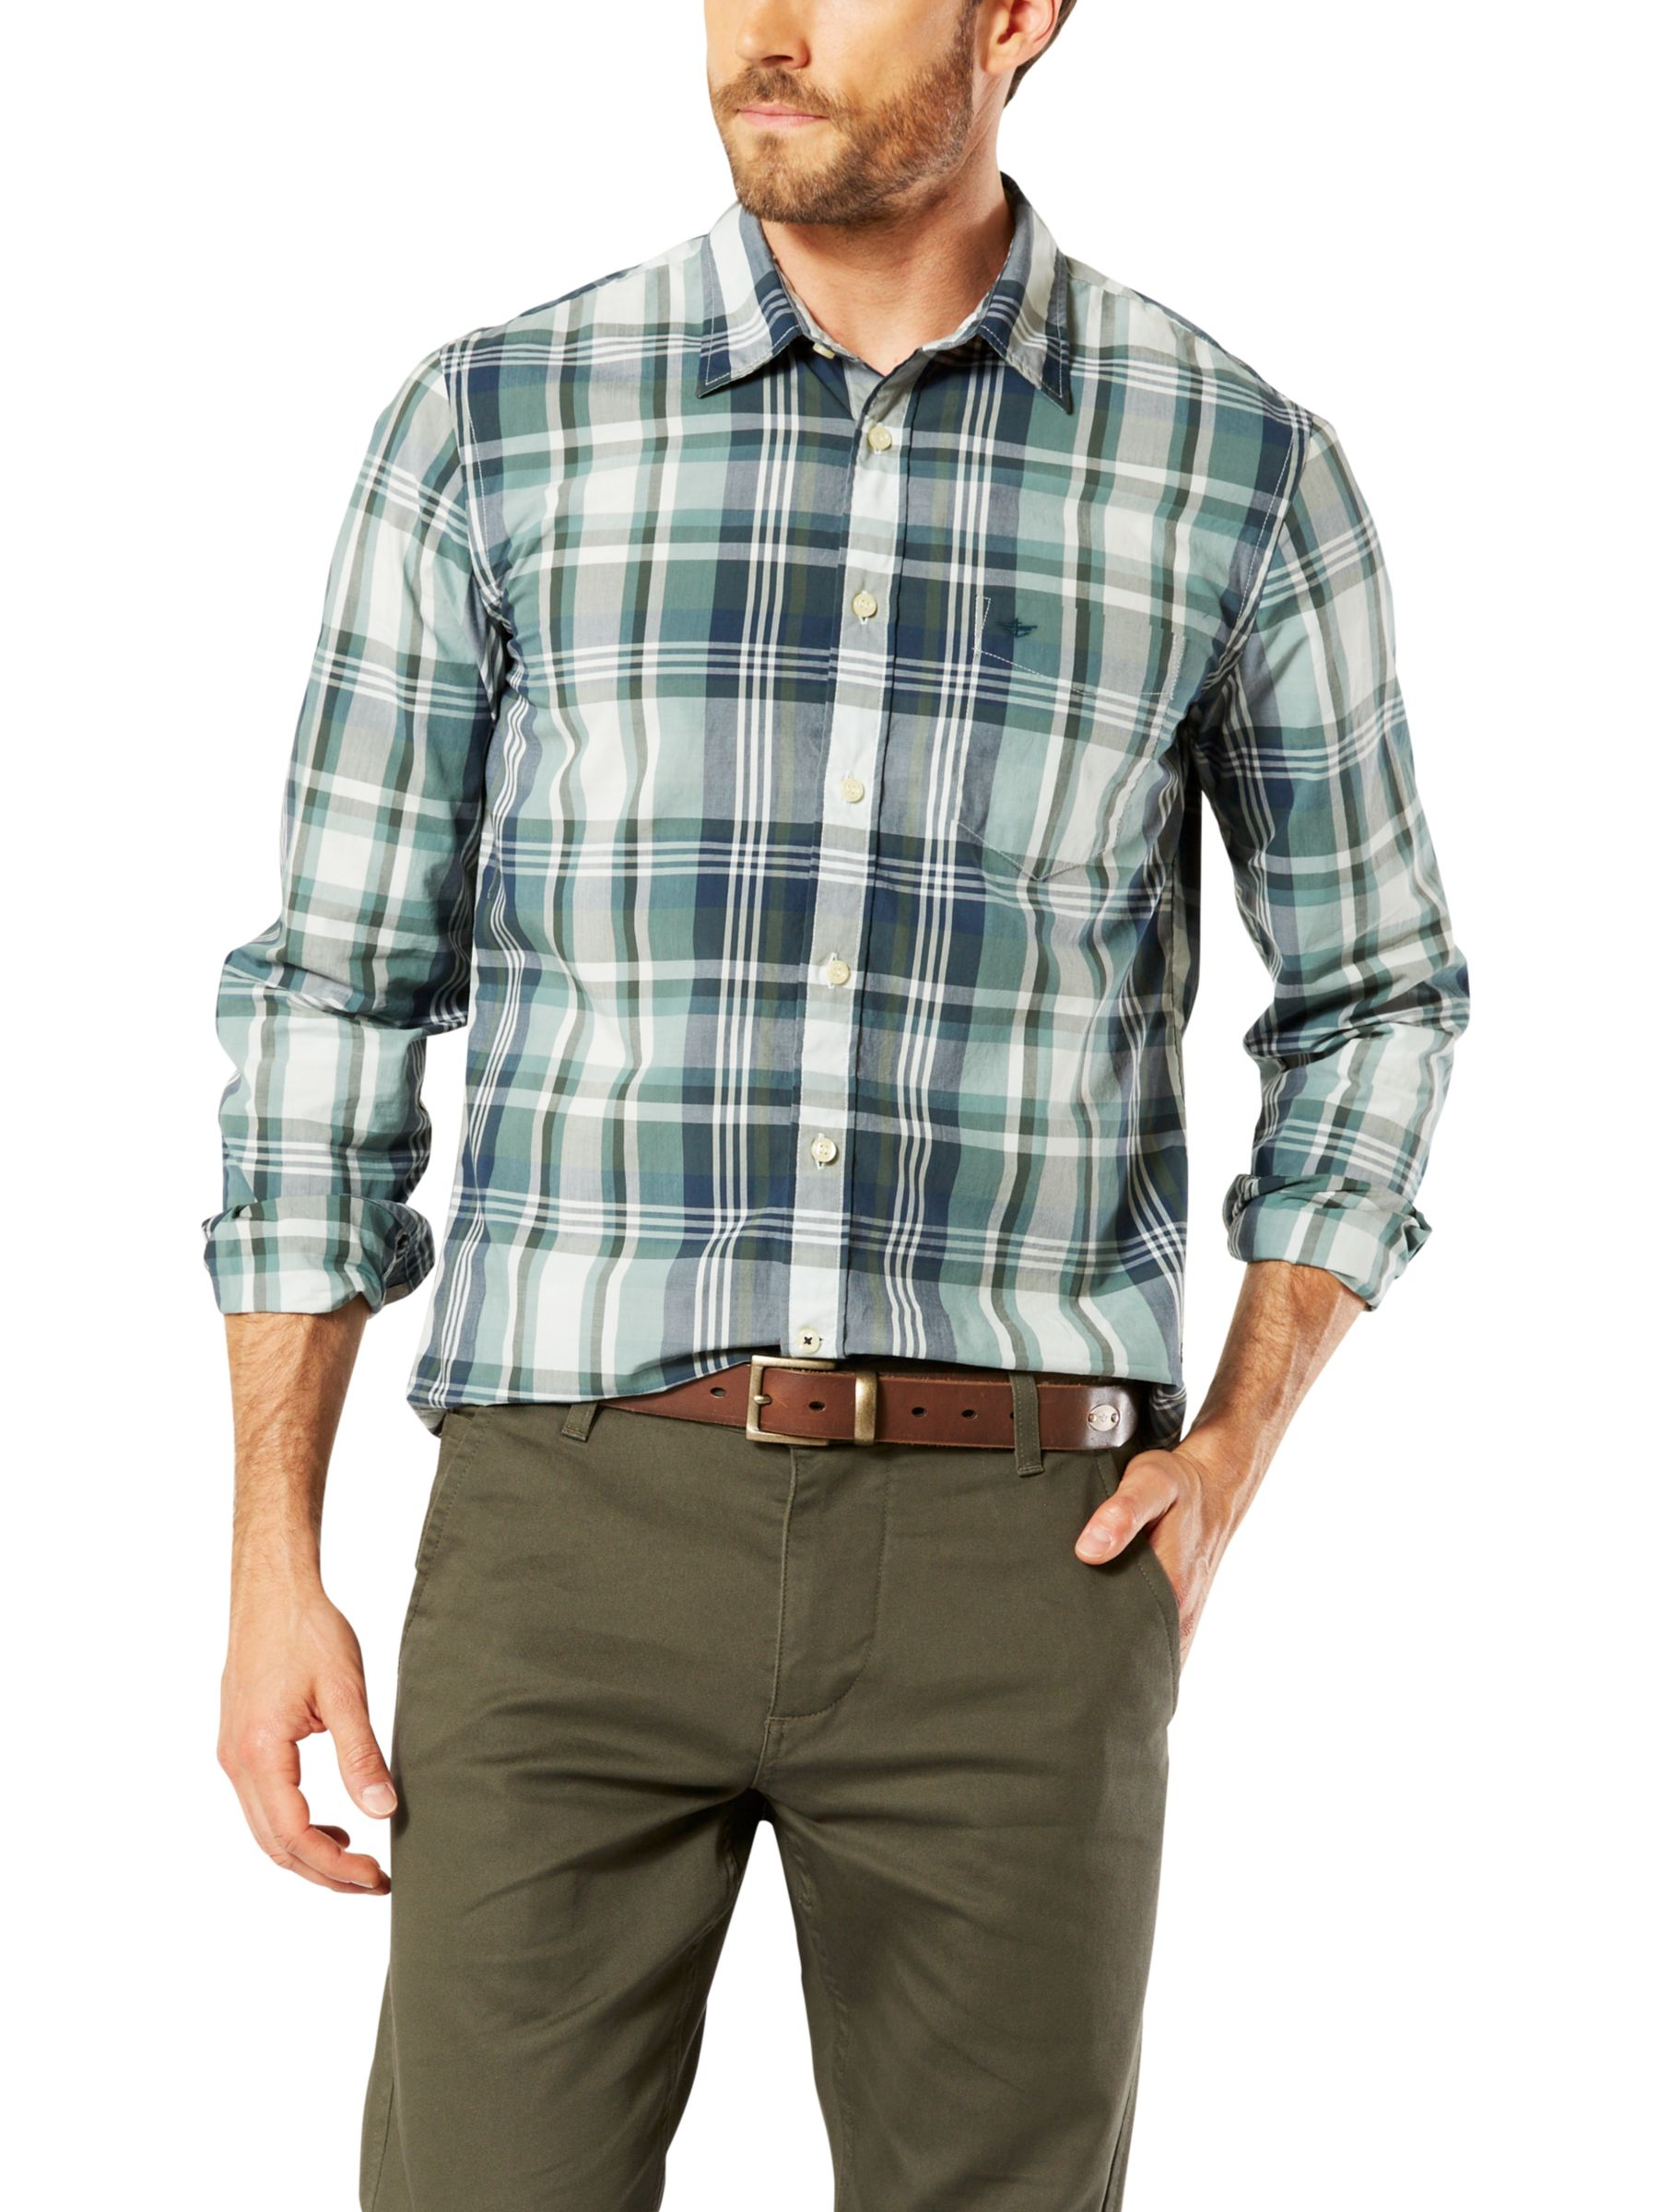 Dockers Dockers Poplin Check Laundered Slim Fit Shirt, Green/Dark Blue Plaid